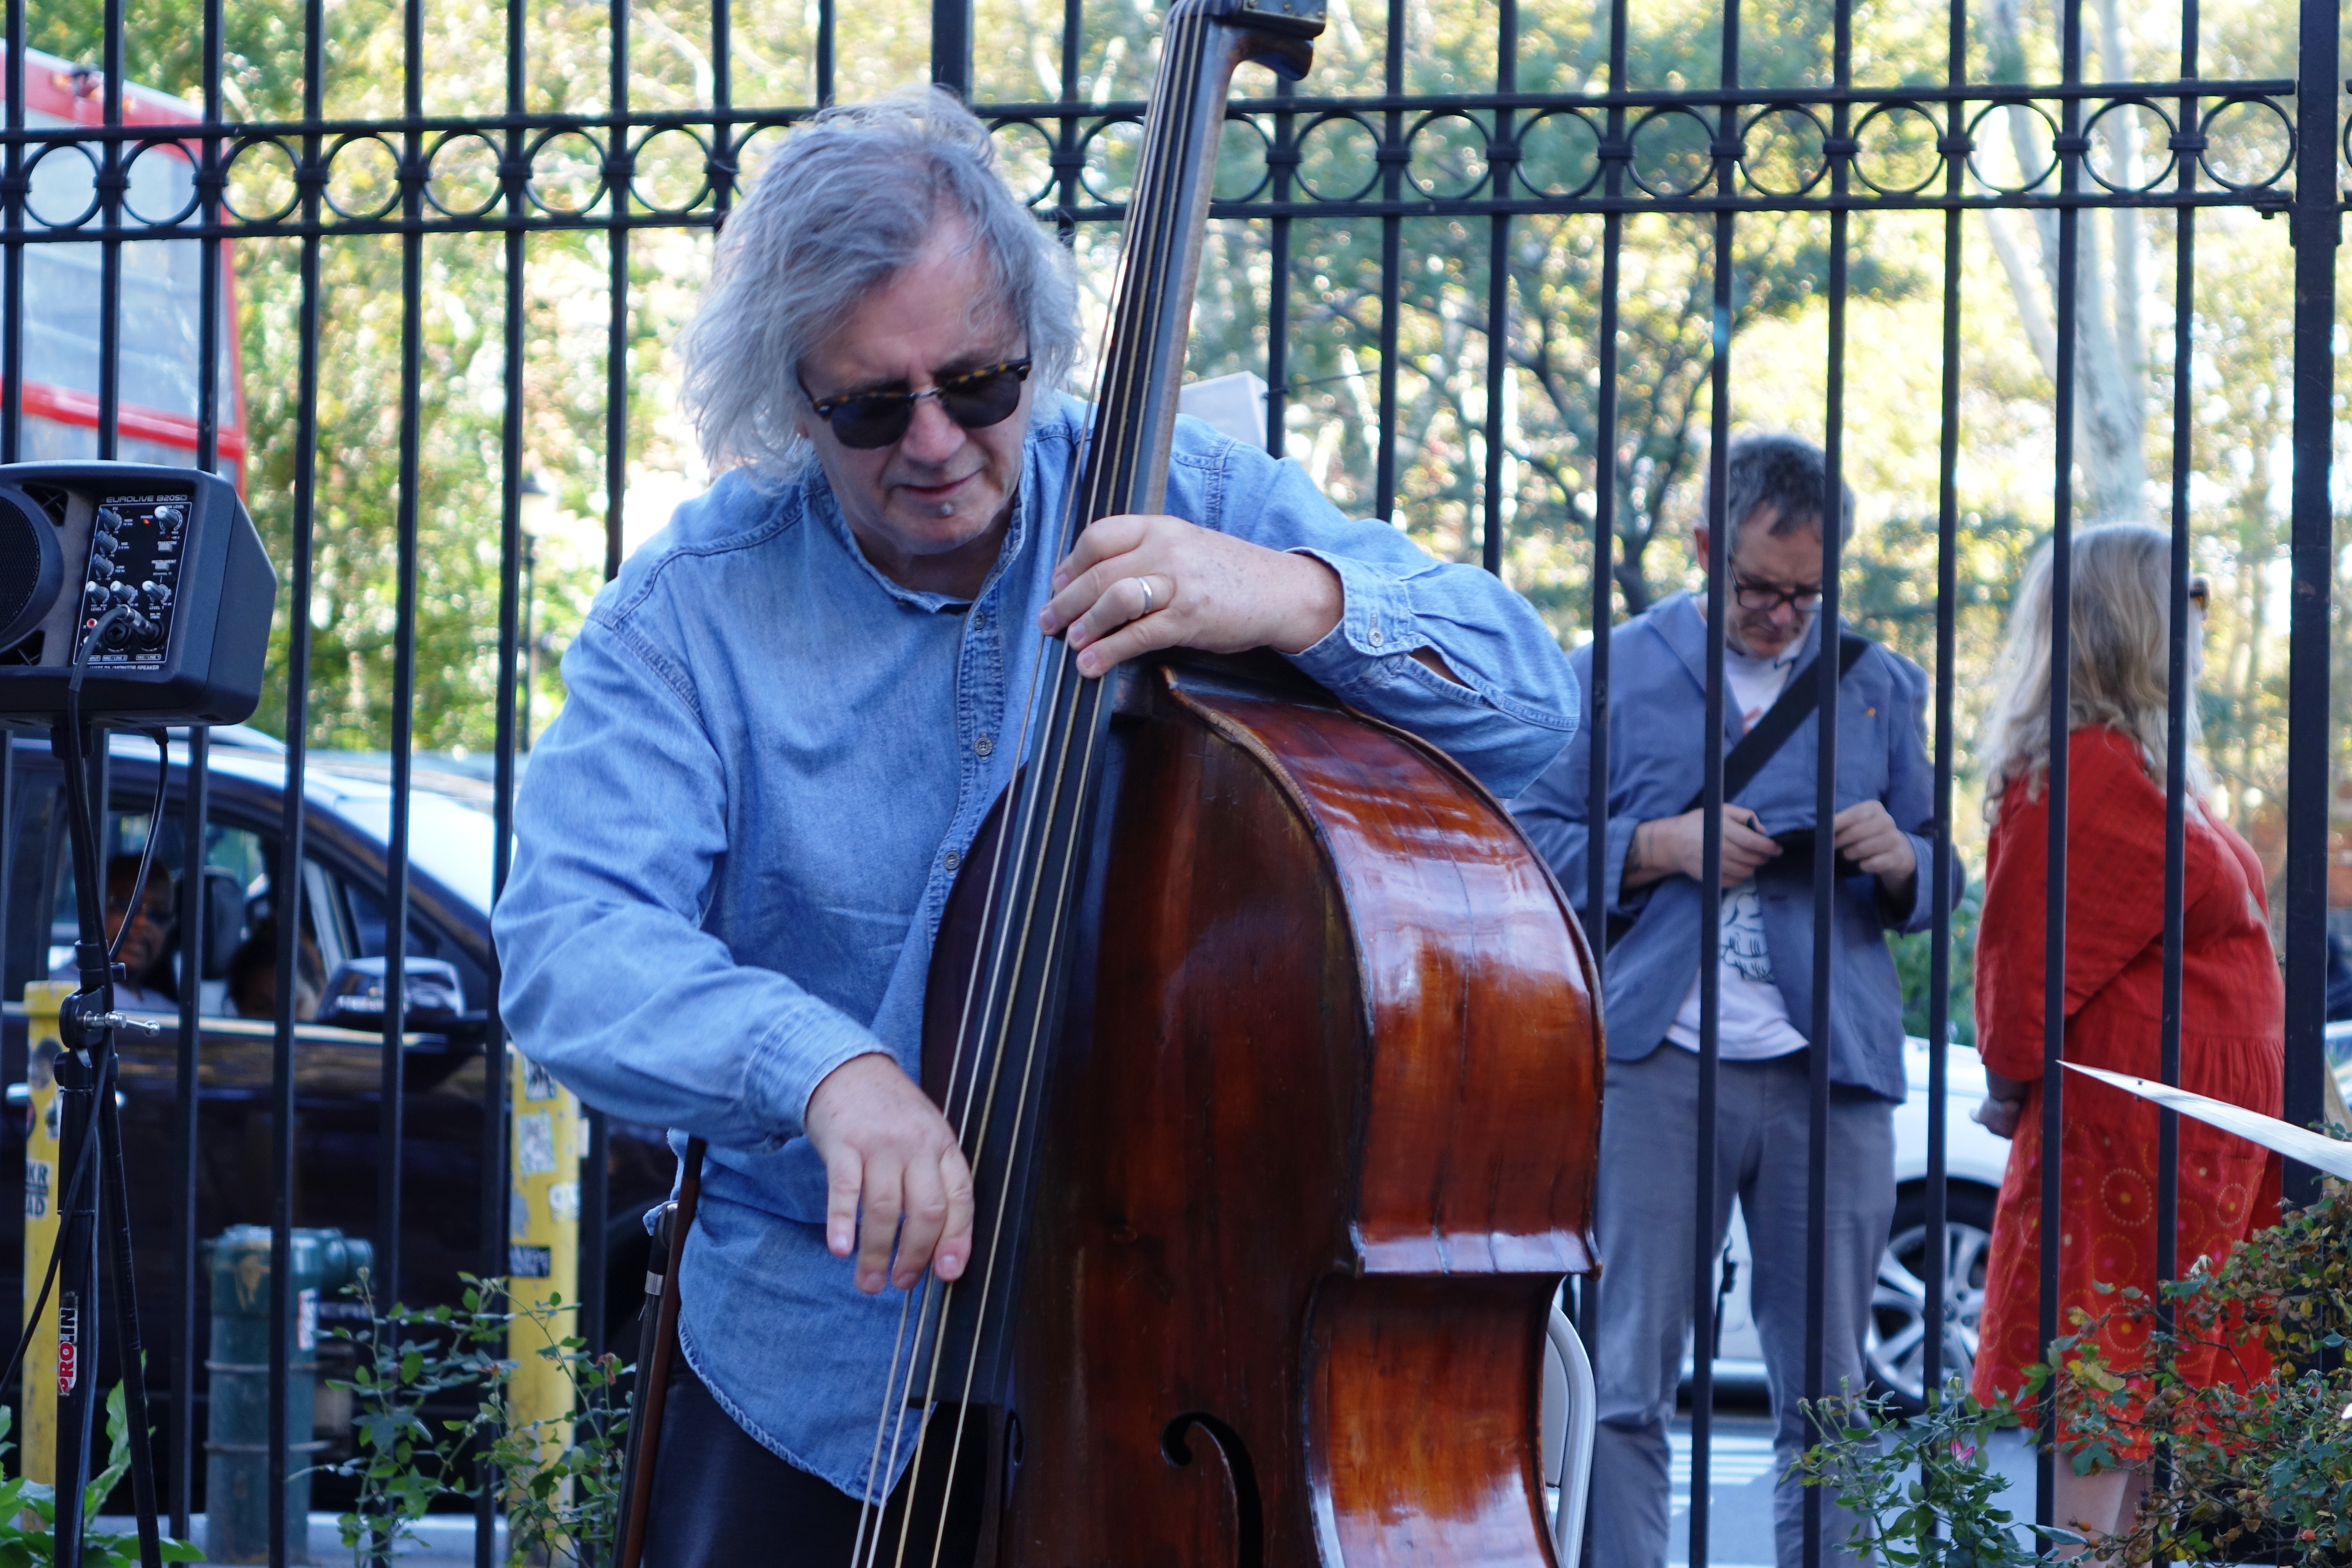 Michael Bisio at First Street Green, NYC in October 2017